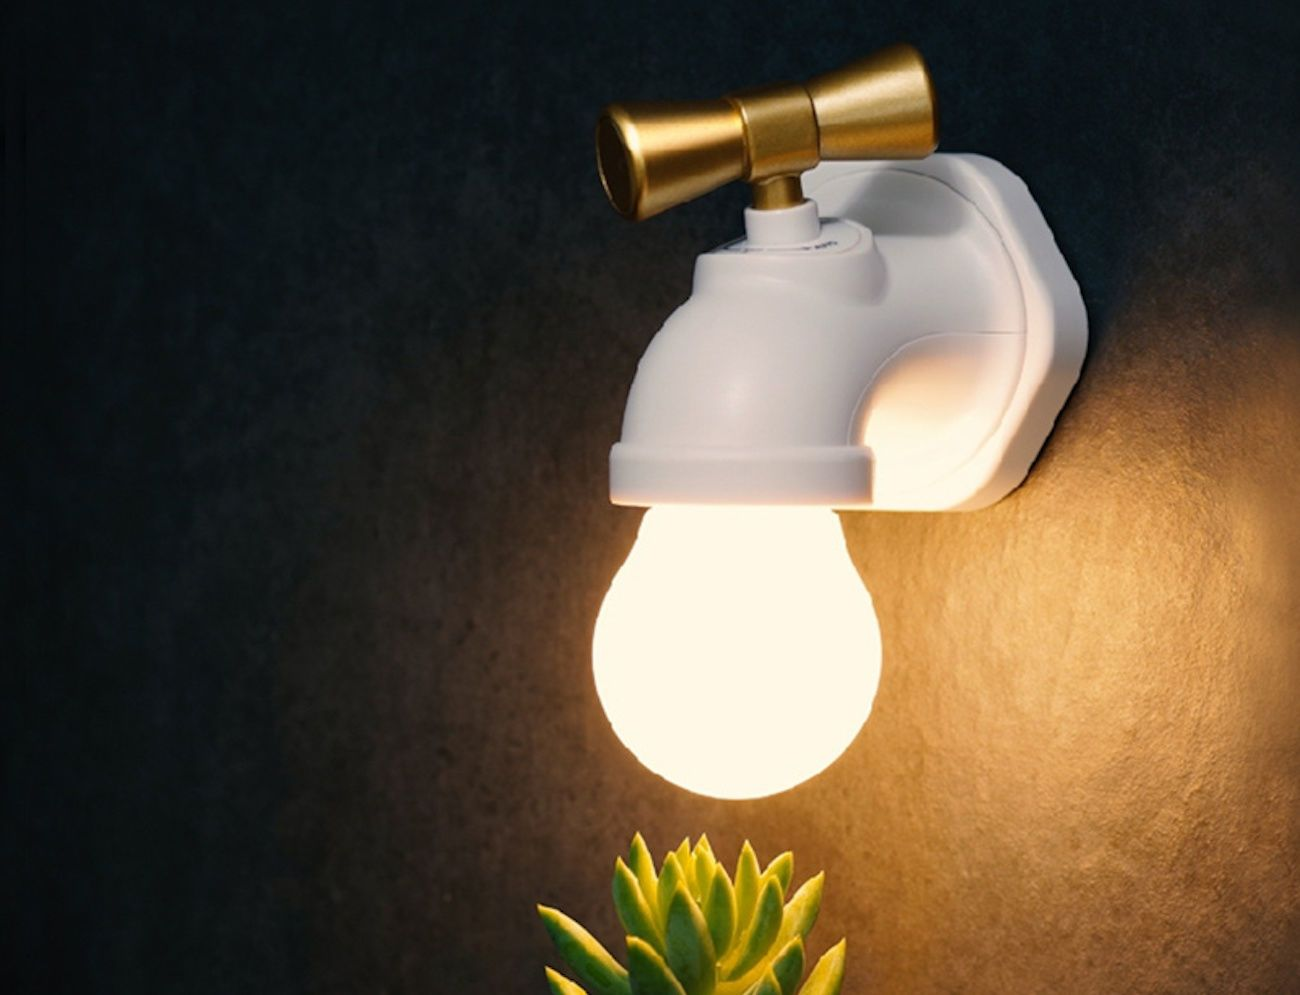 Faucet-Shaped LED Night Lamp